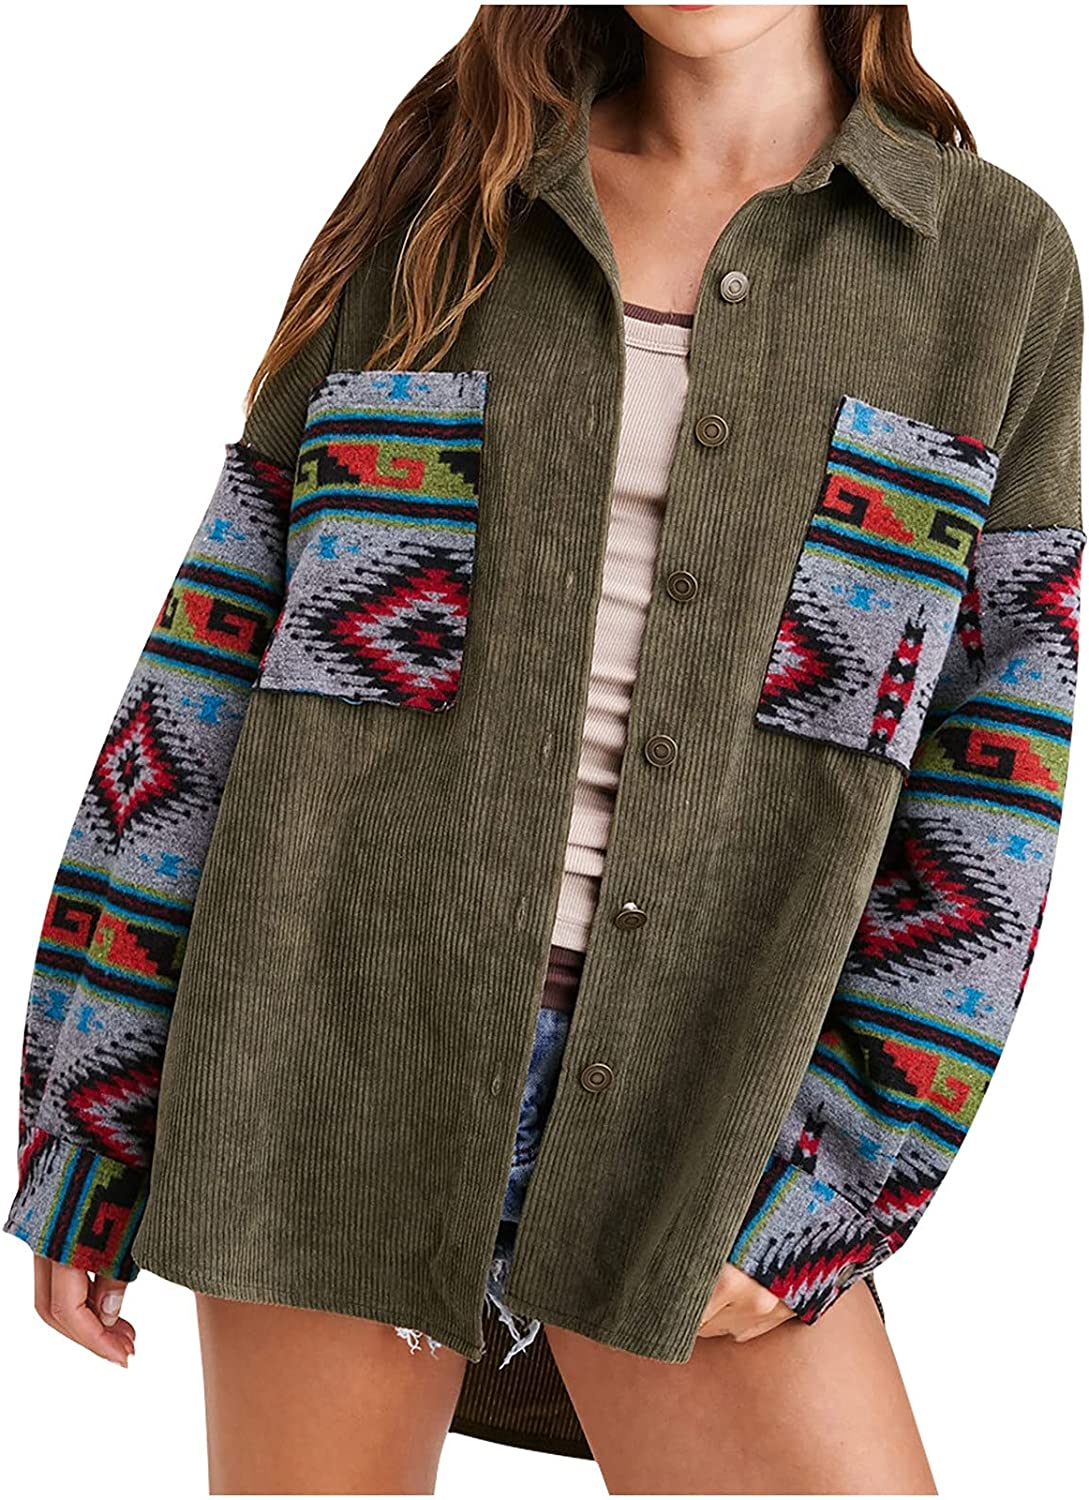 Corduroy Popularity Coat for Women Bargain Pattern T Breasted Patchwork Single